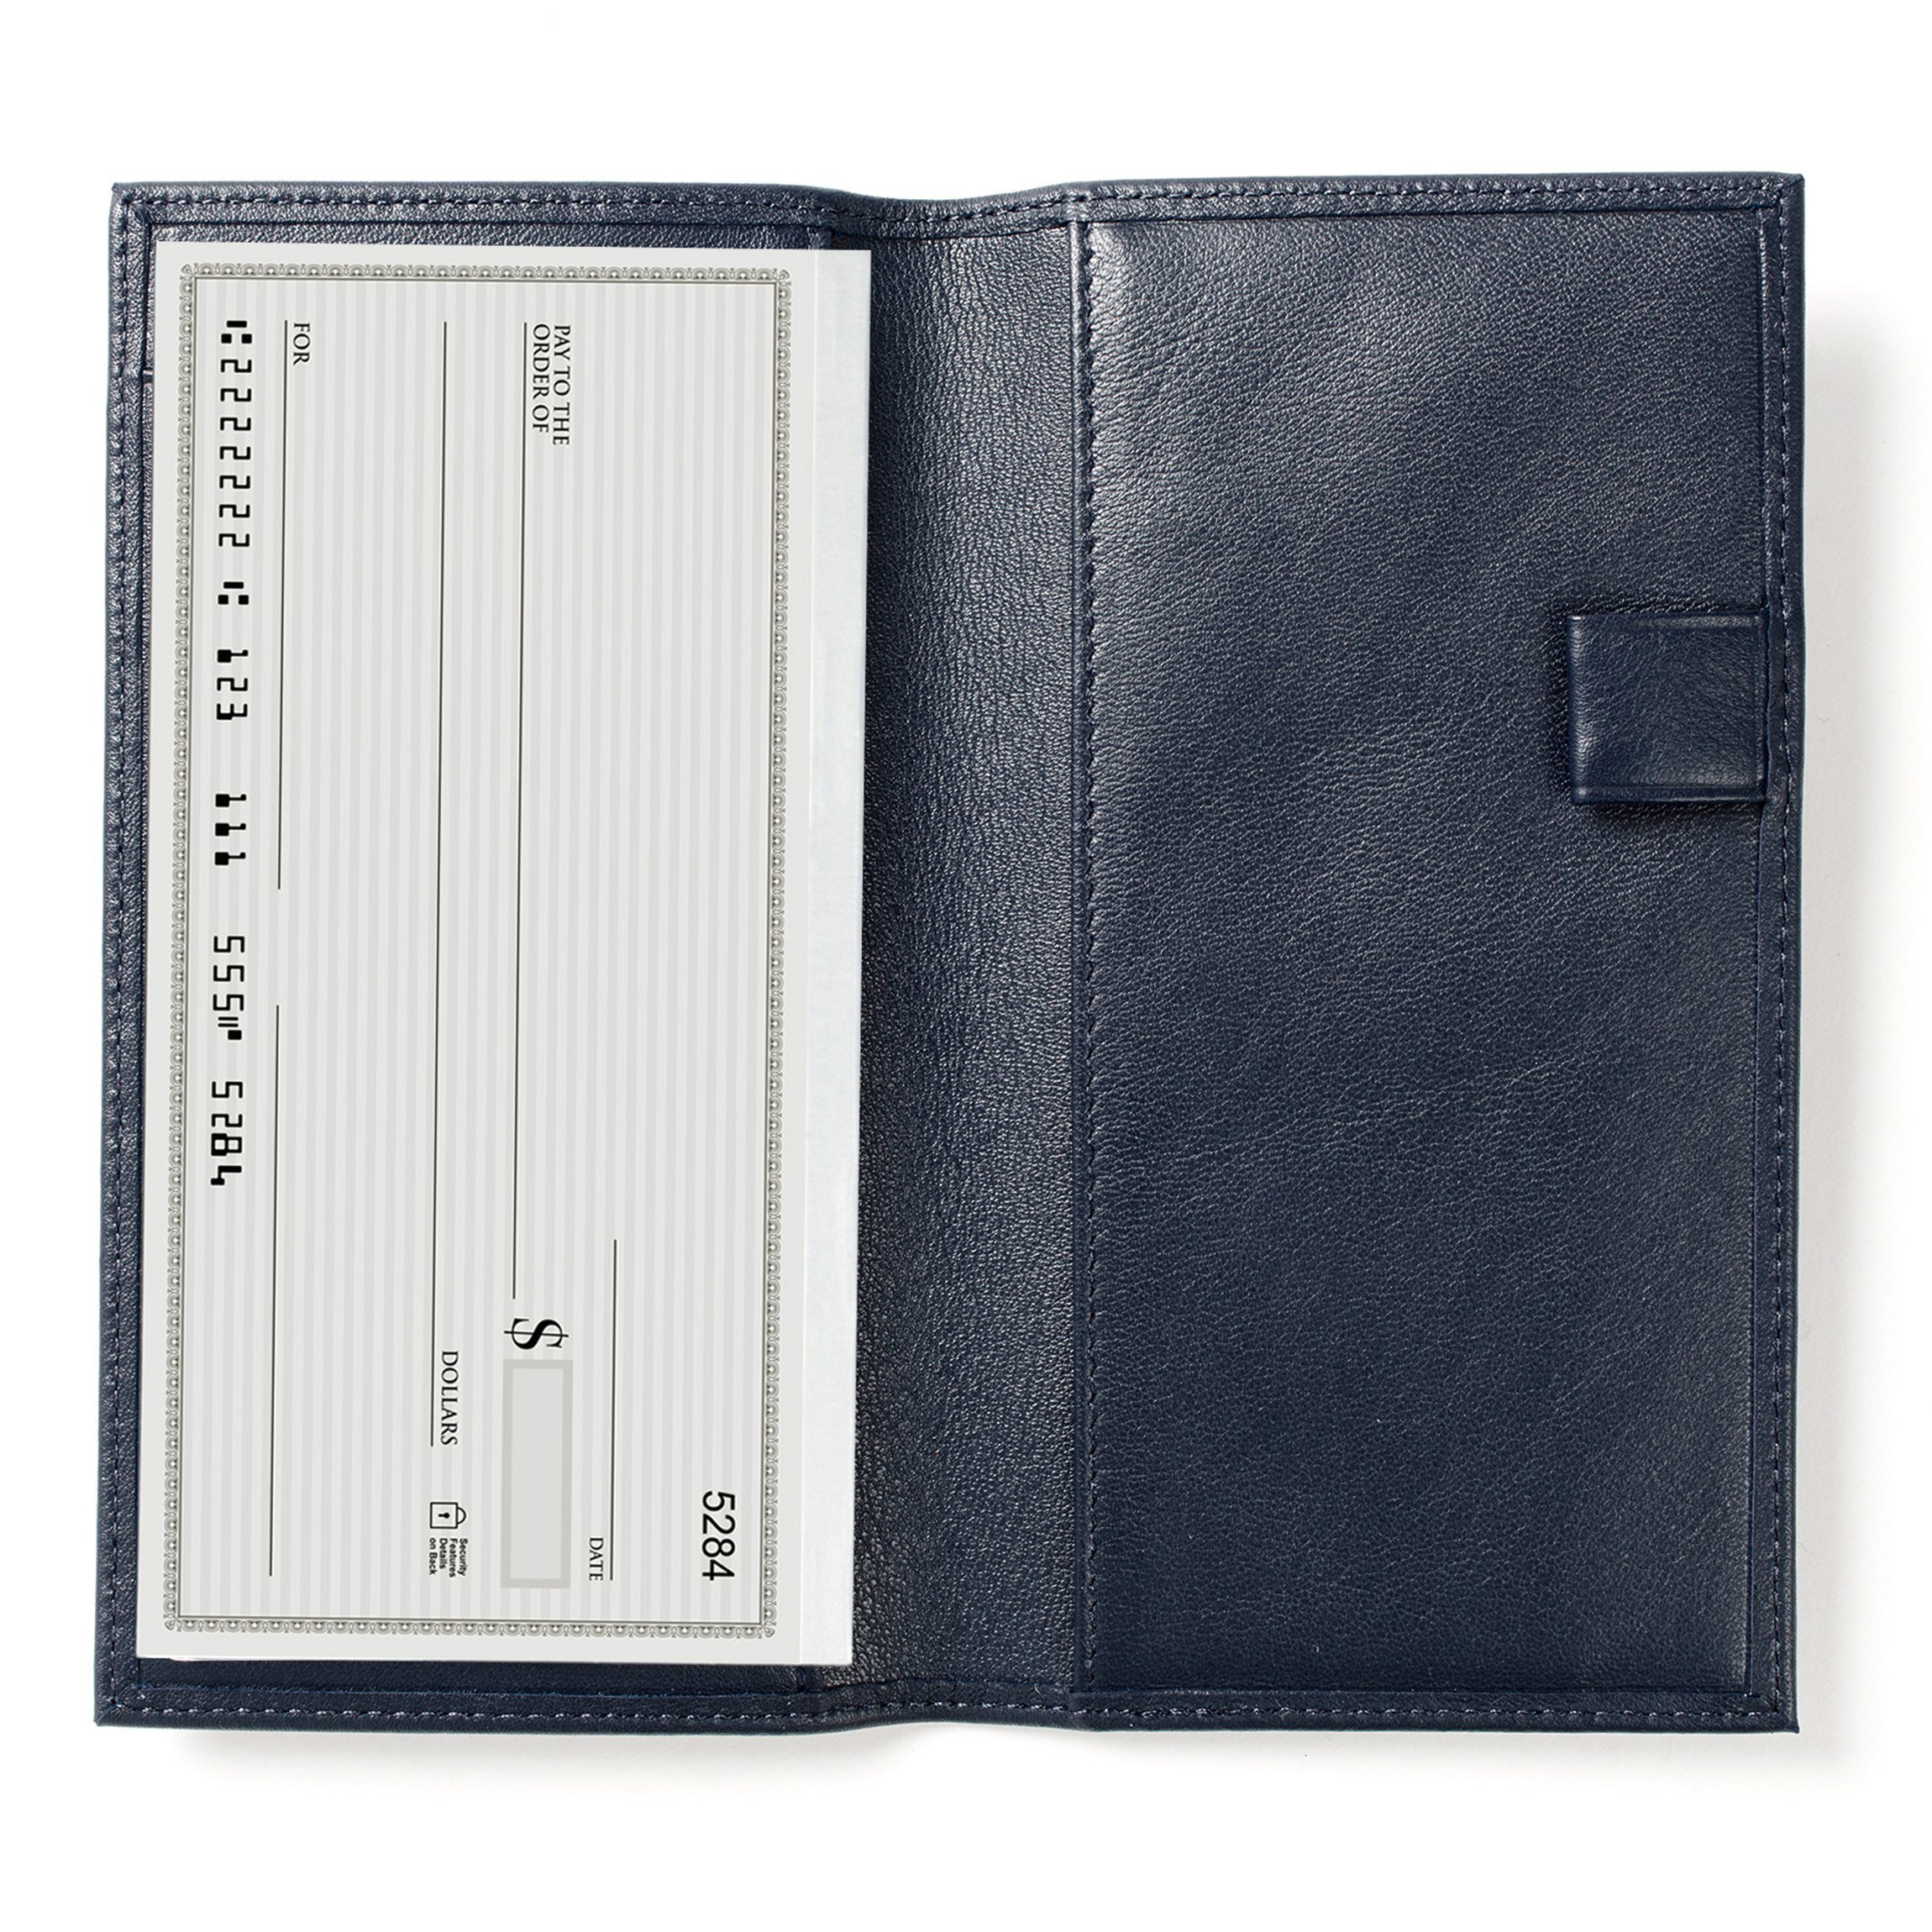 Deluxe Checkbook Cover with Divider - Full Grain Leather - Navy (blue)